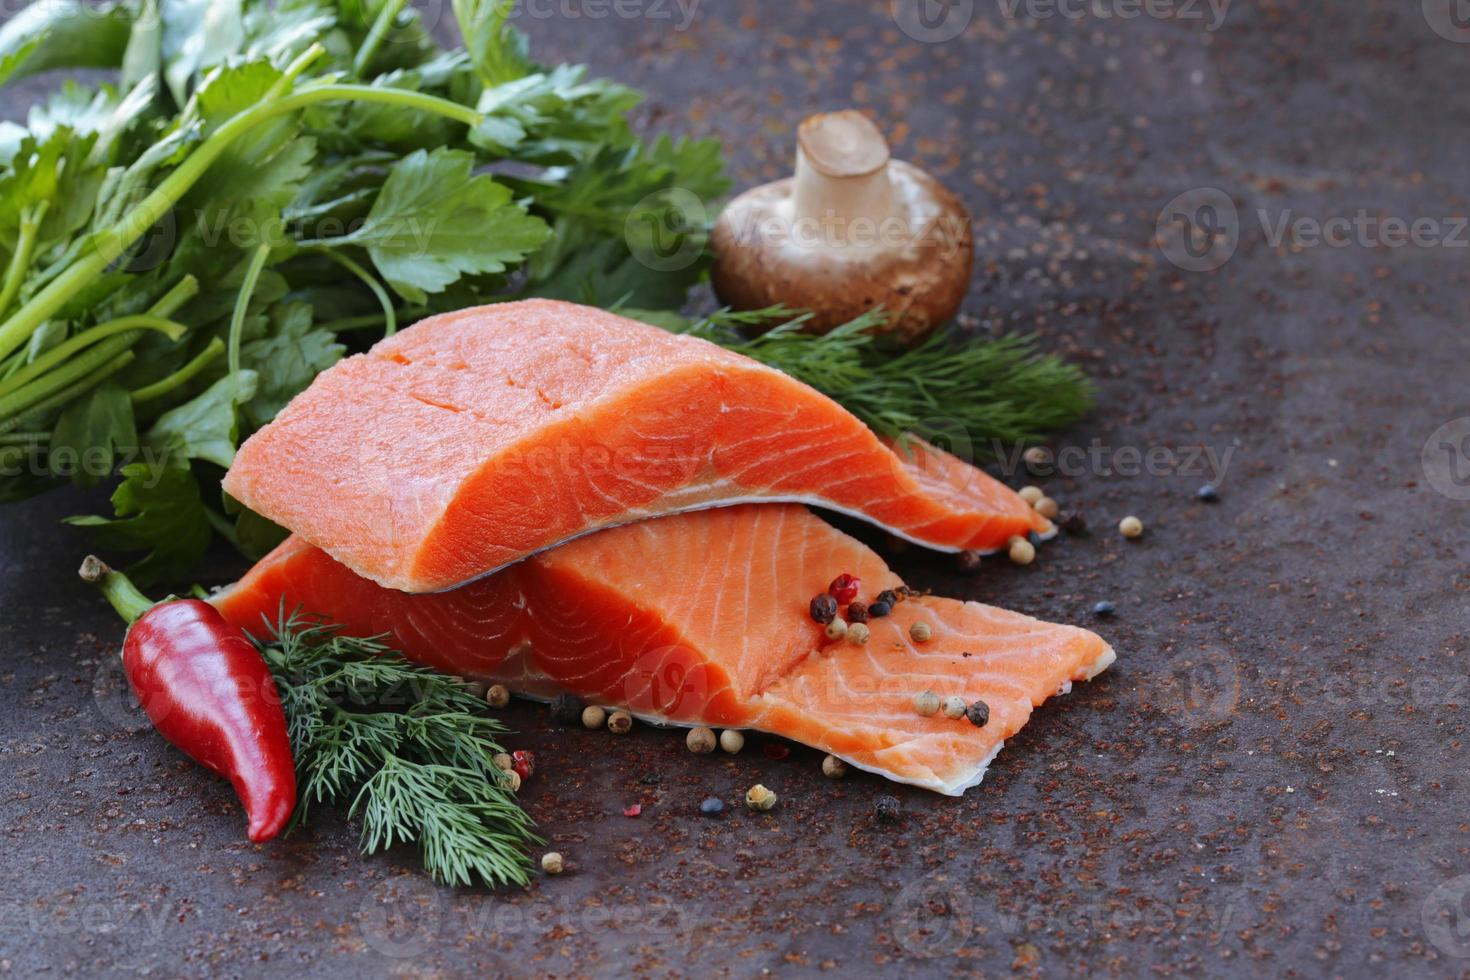 fresh salmon (red fish) fillet with herbs, spices and vegetables photo